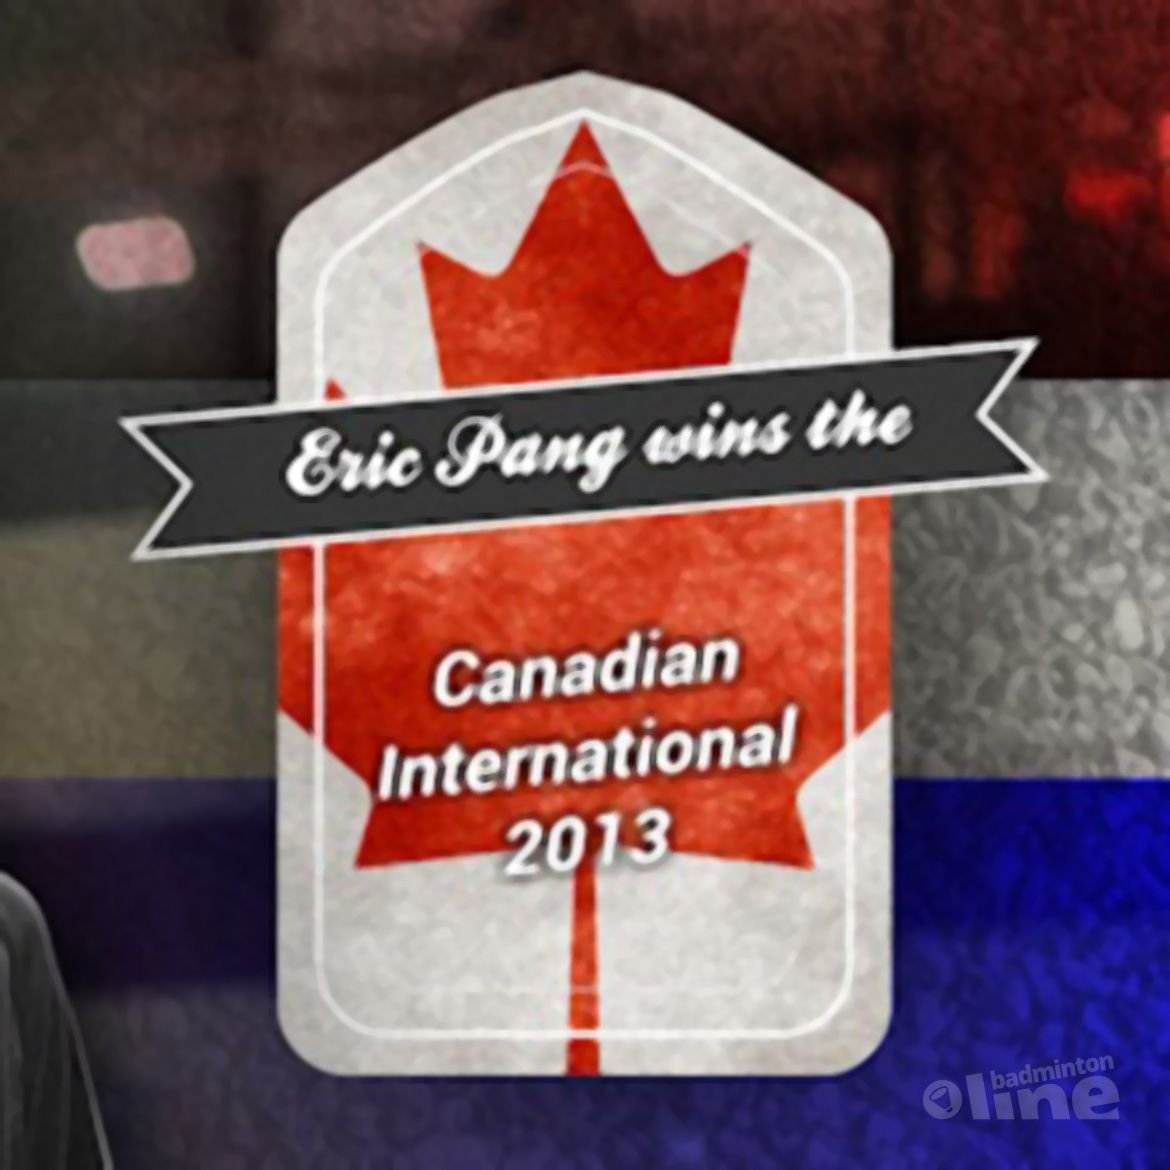 Eric Pang wint de Canadian International 2013 in Ottawa